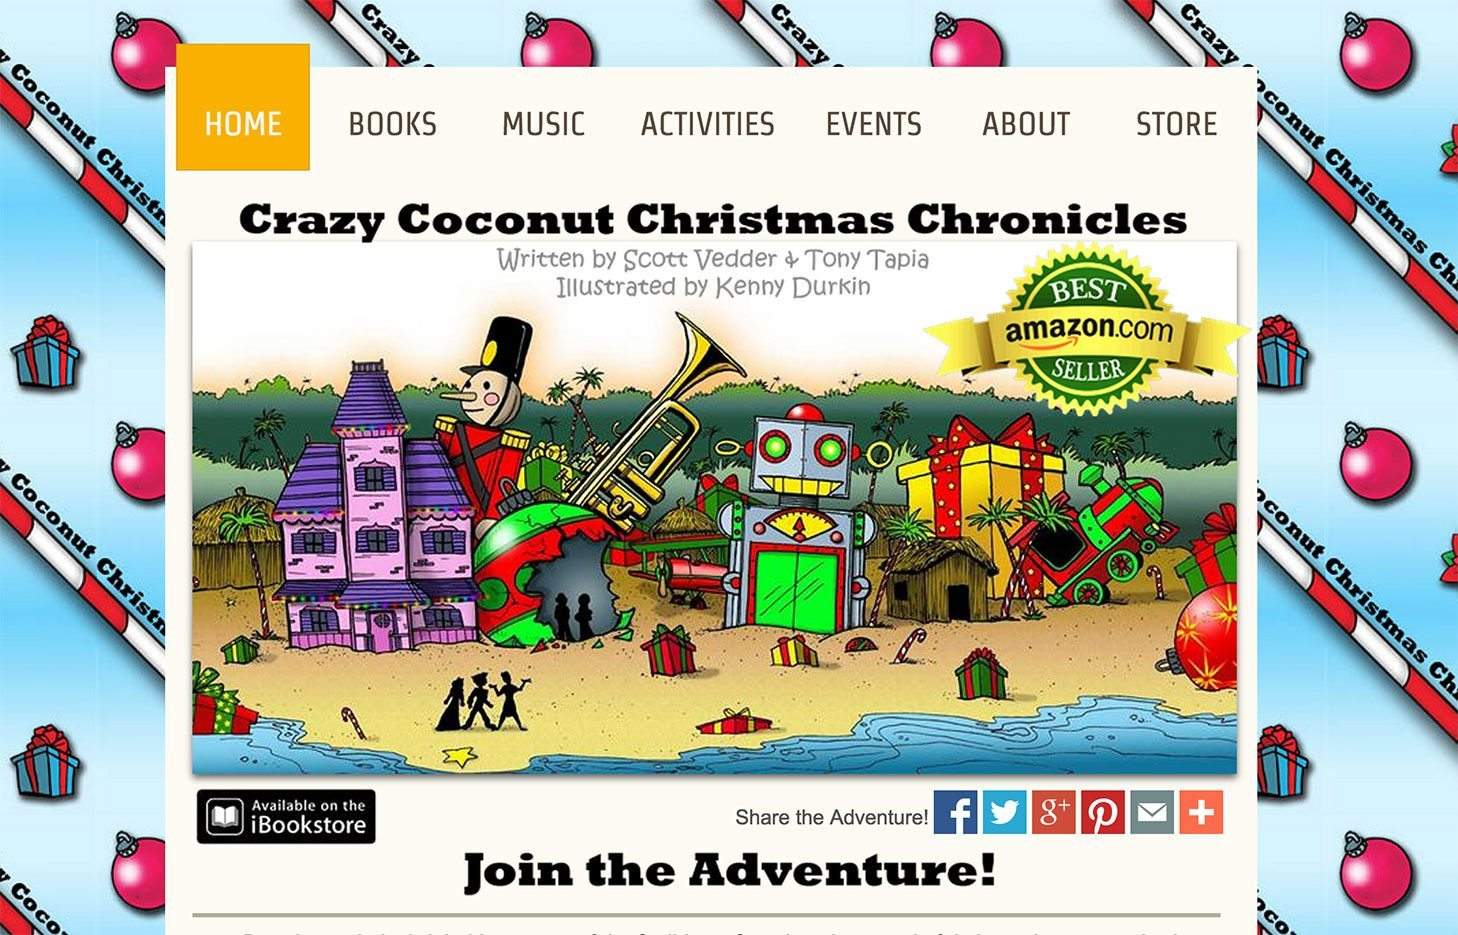 Crazy Coconut Christmas Chronicles